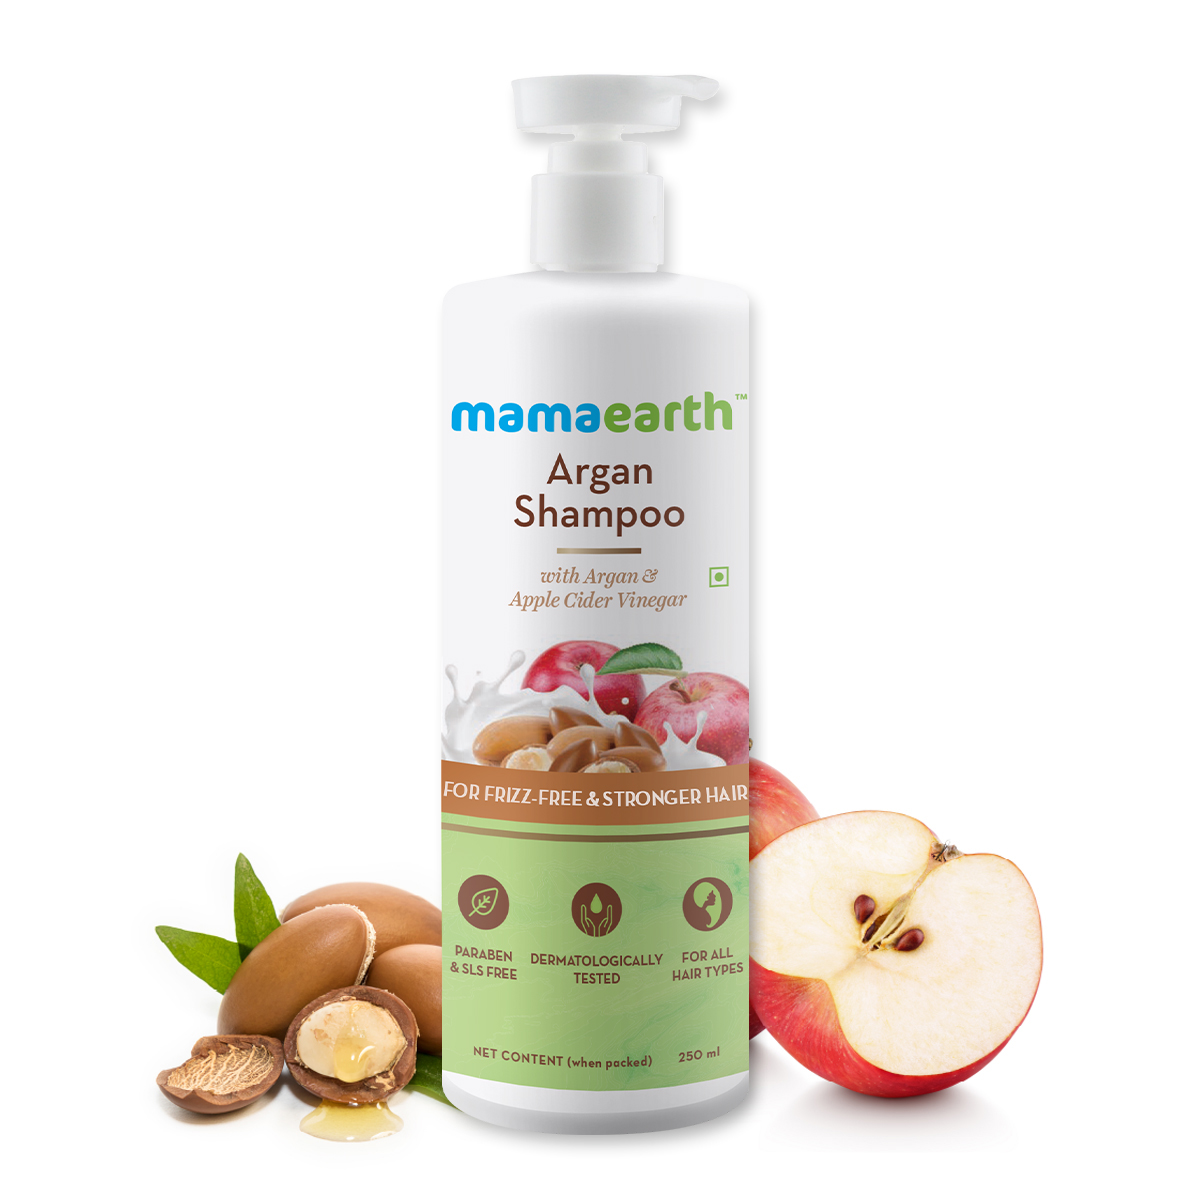 Mamaearth Argan Shampoo With Argan & Apple Cider Vinegar for Frizz-free & Stronger Hair - 250 ml